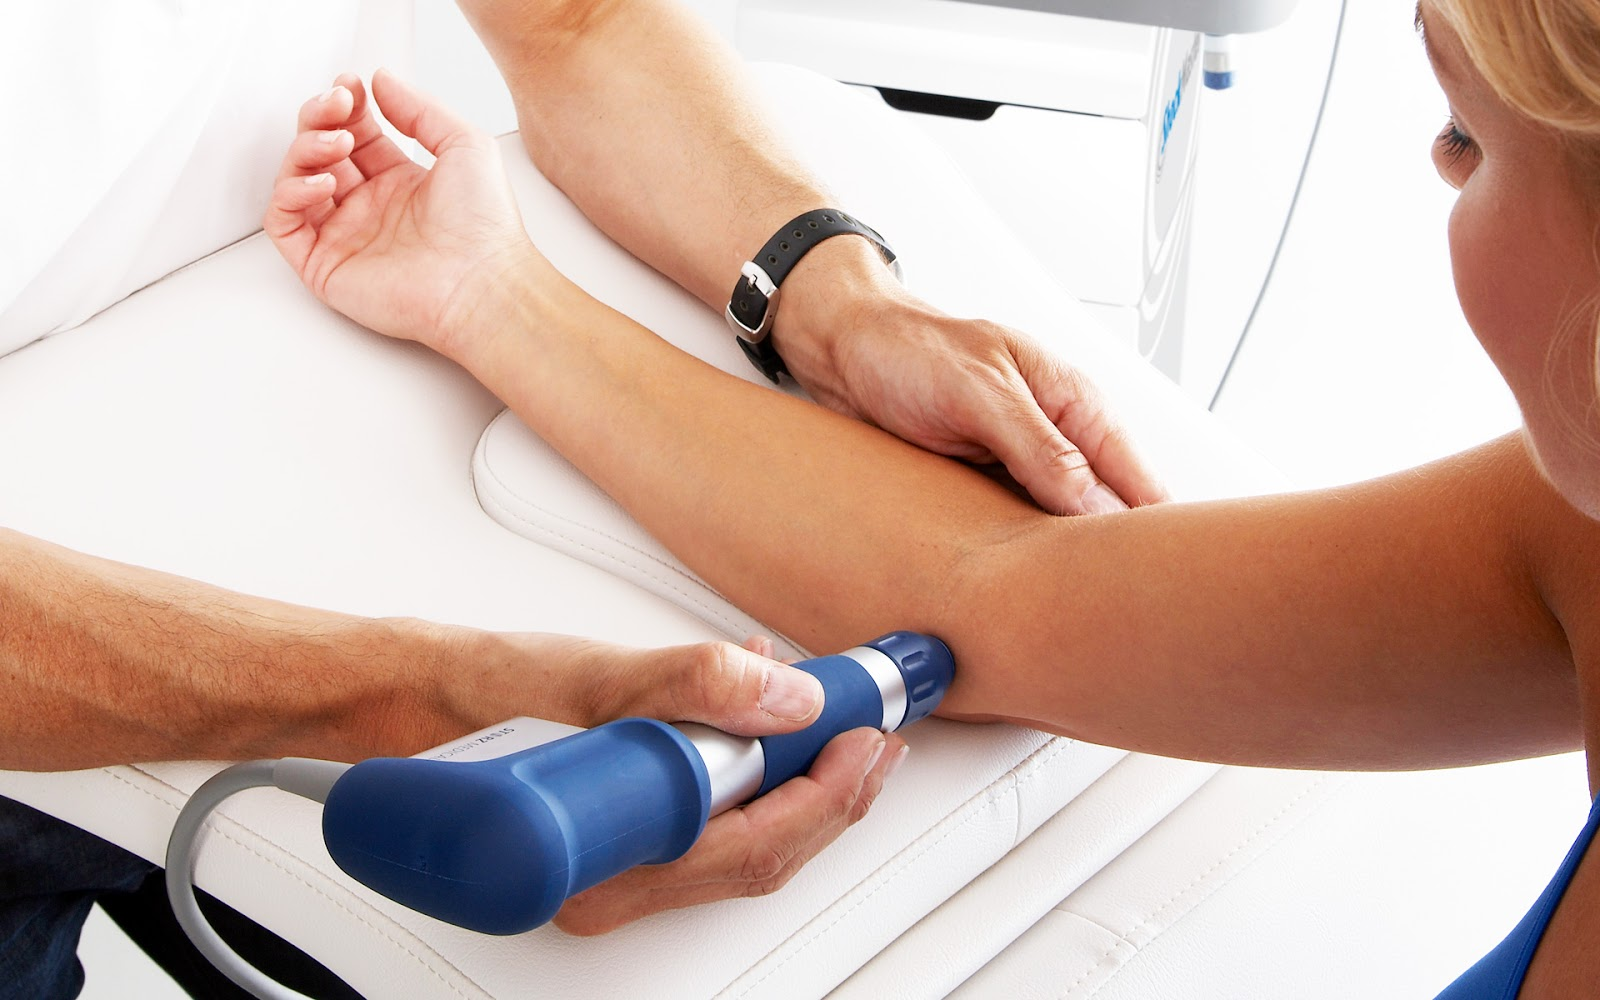 shockwave therapy performed